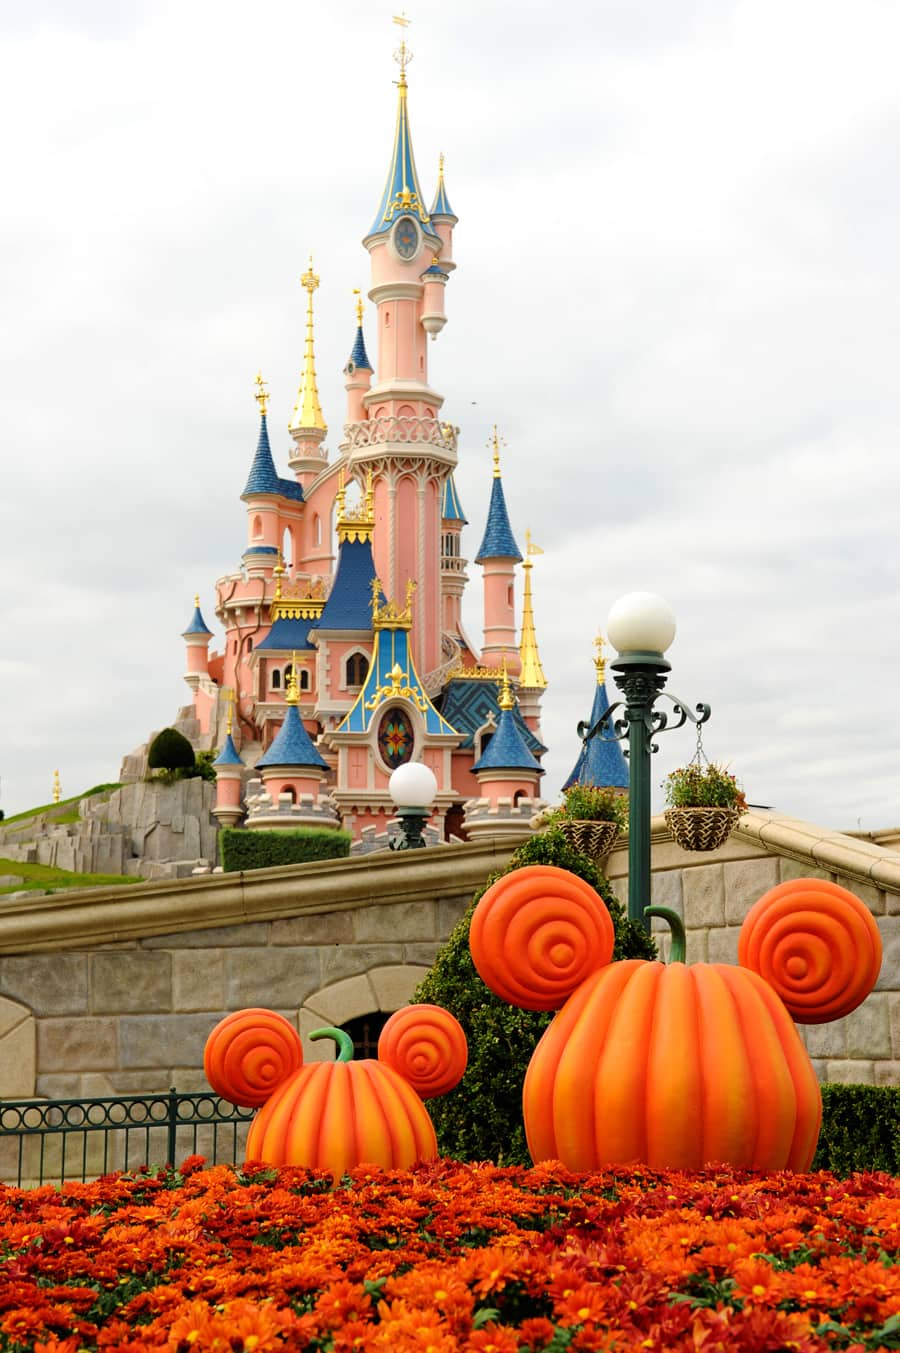 disney s halloween festival in paris disney parks blog. Black Bedroom Furniture Sets. Home Design Ideas